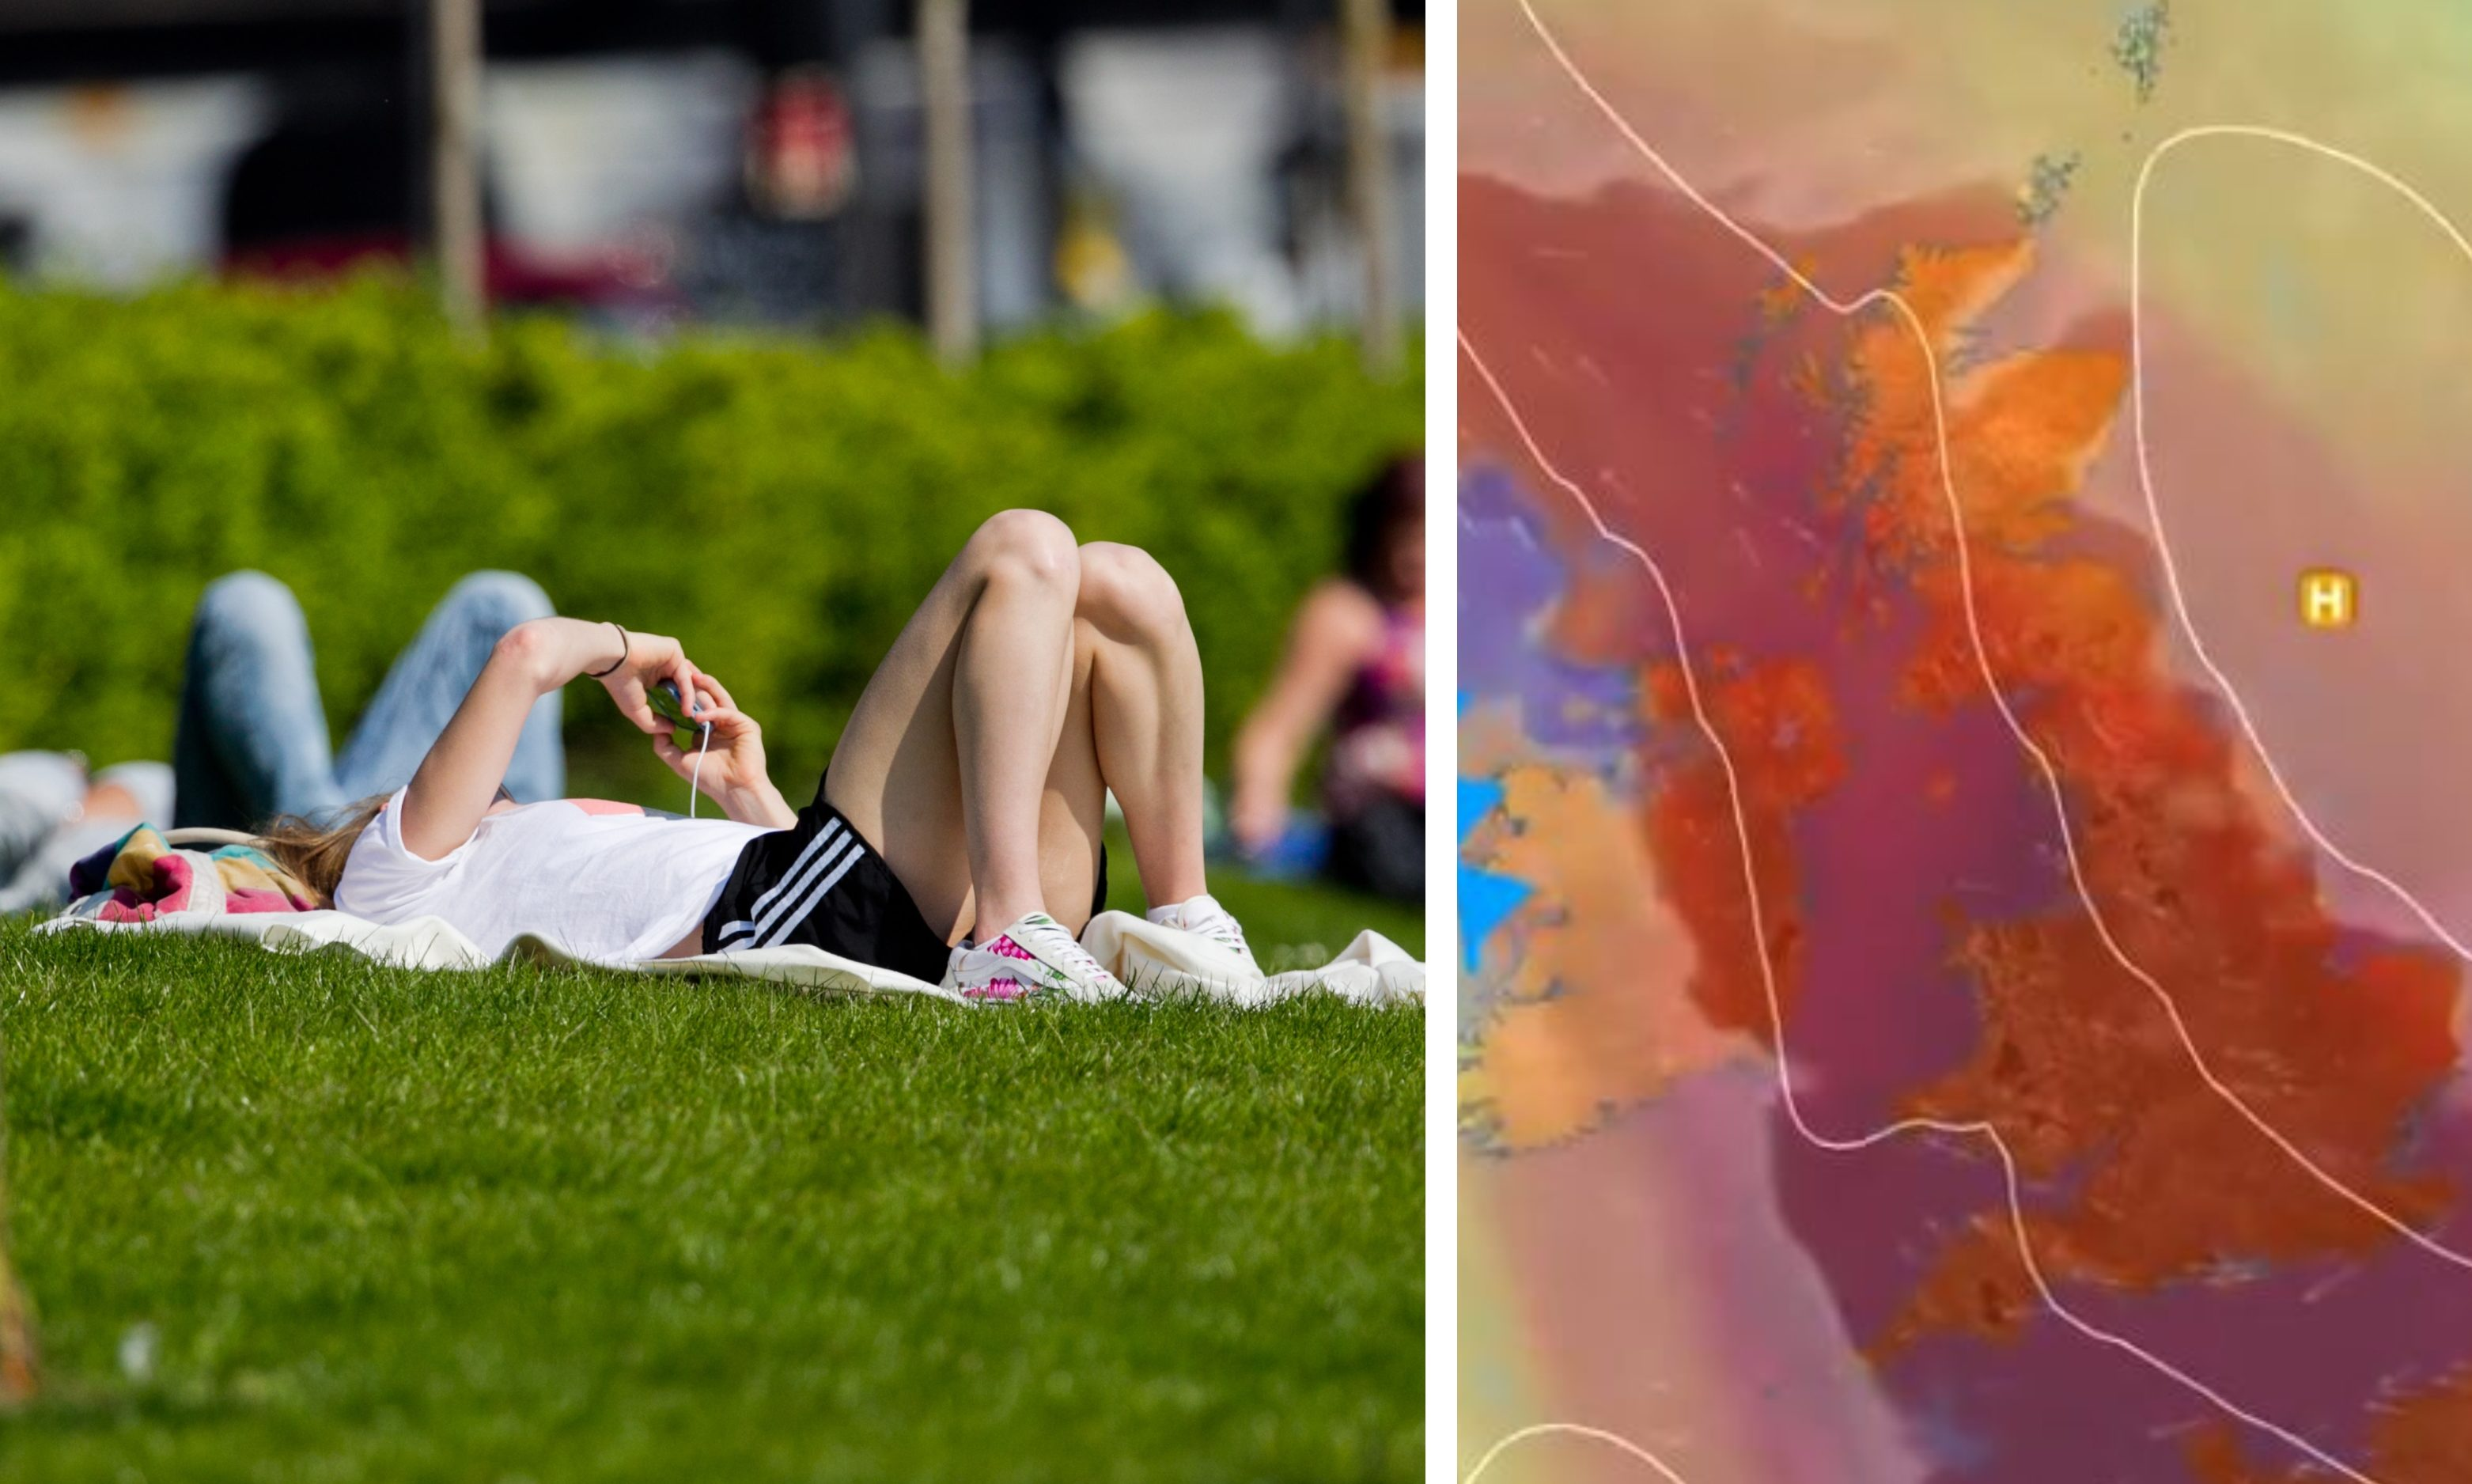 A heatwave is due in Scotland on Friday and Saturday.